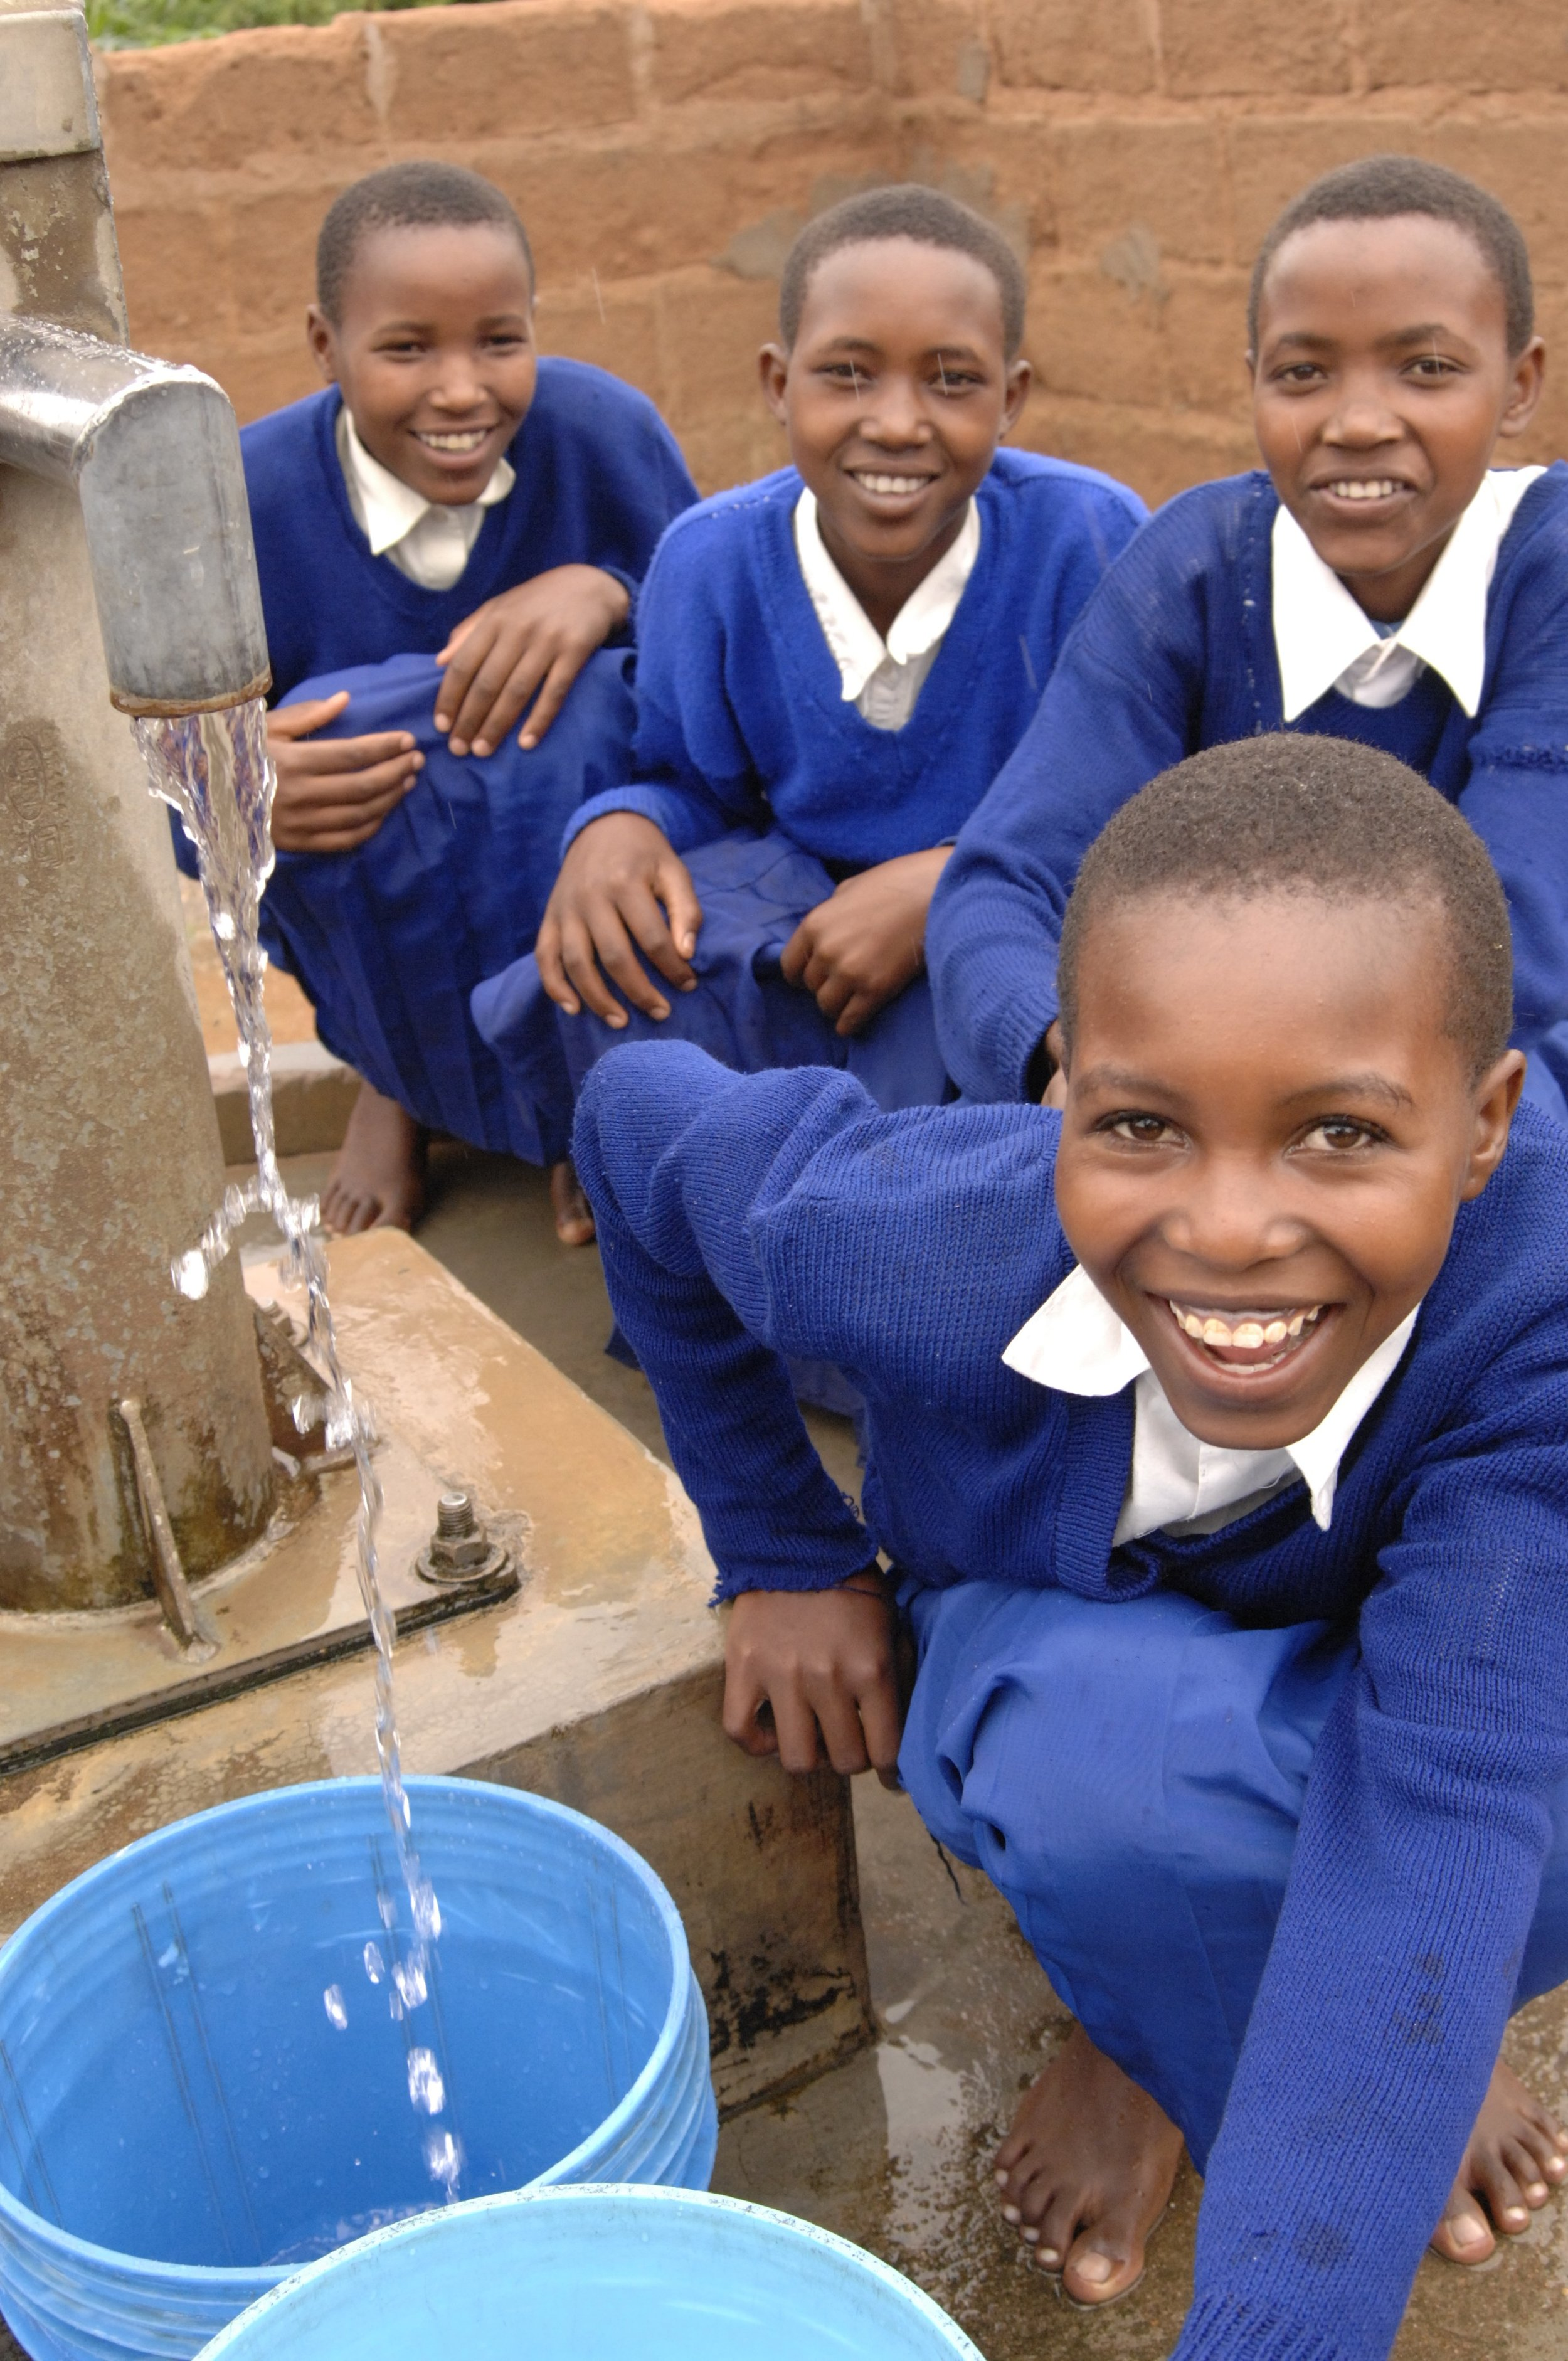 """Mbulu District, Tanzania - Completed in 2014   From the humble beginnings of Project Waterfall, funds raised from UK Coffee Week and The London Coffee Festival from 2011-2014 helped fund this 4 year proejct in the Mbulu district of Tanzania. This project was able to directly change the lives of over 10,000 people, including the Yaeda Chini Primary School.  """"To me, this is a wonder. I did not expect to see this water here in Mongo wa Mono in my lifetime."""" - Yasintha Edward, Secretary of Yaedi Chini COWSO (Community Owned Water and Sanitation Organisation)"""